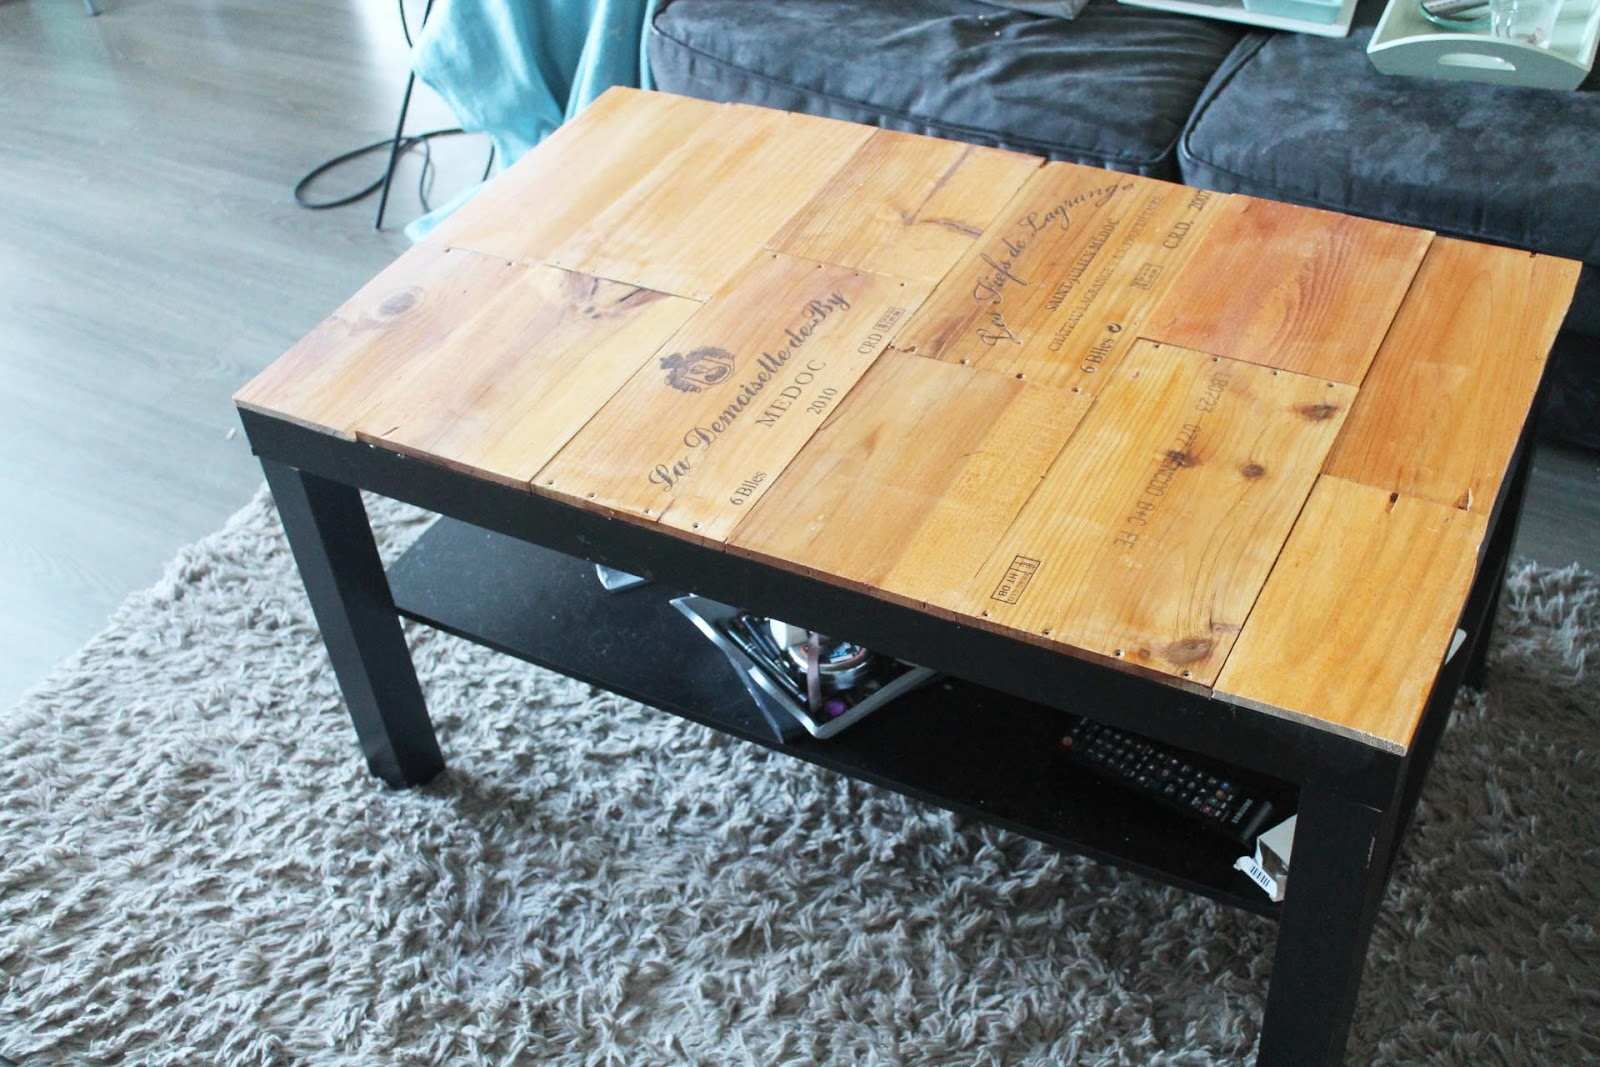 Table basse ikea lack customiser lille maison - Ikea table basse lack ...